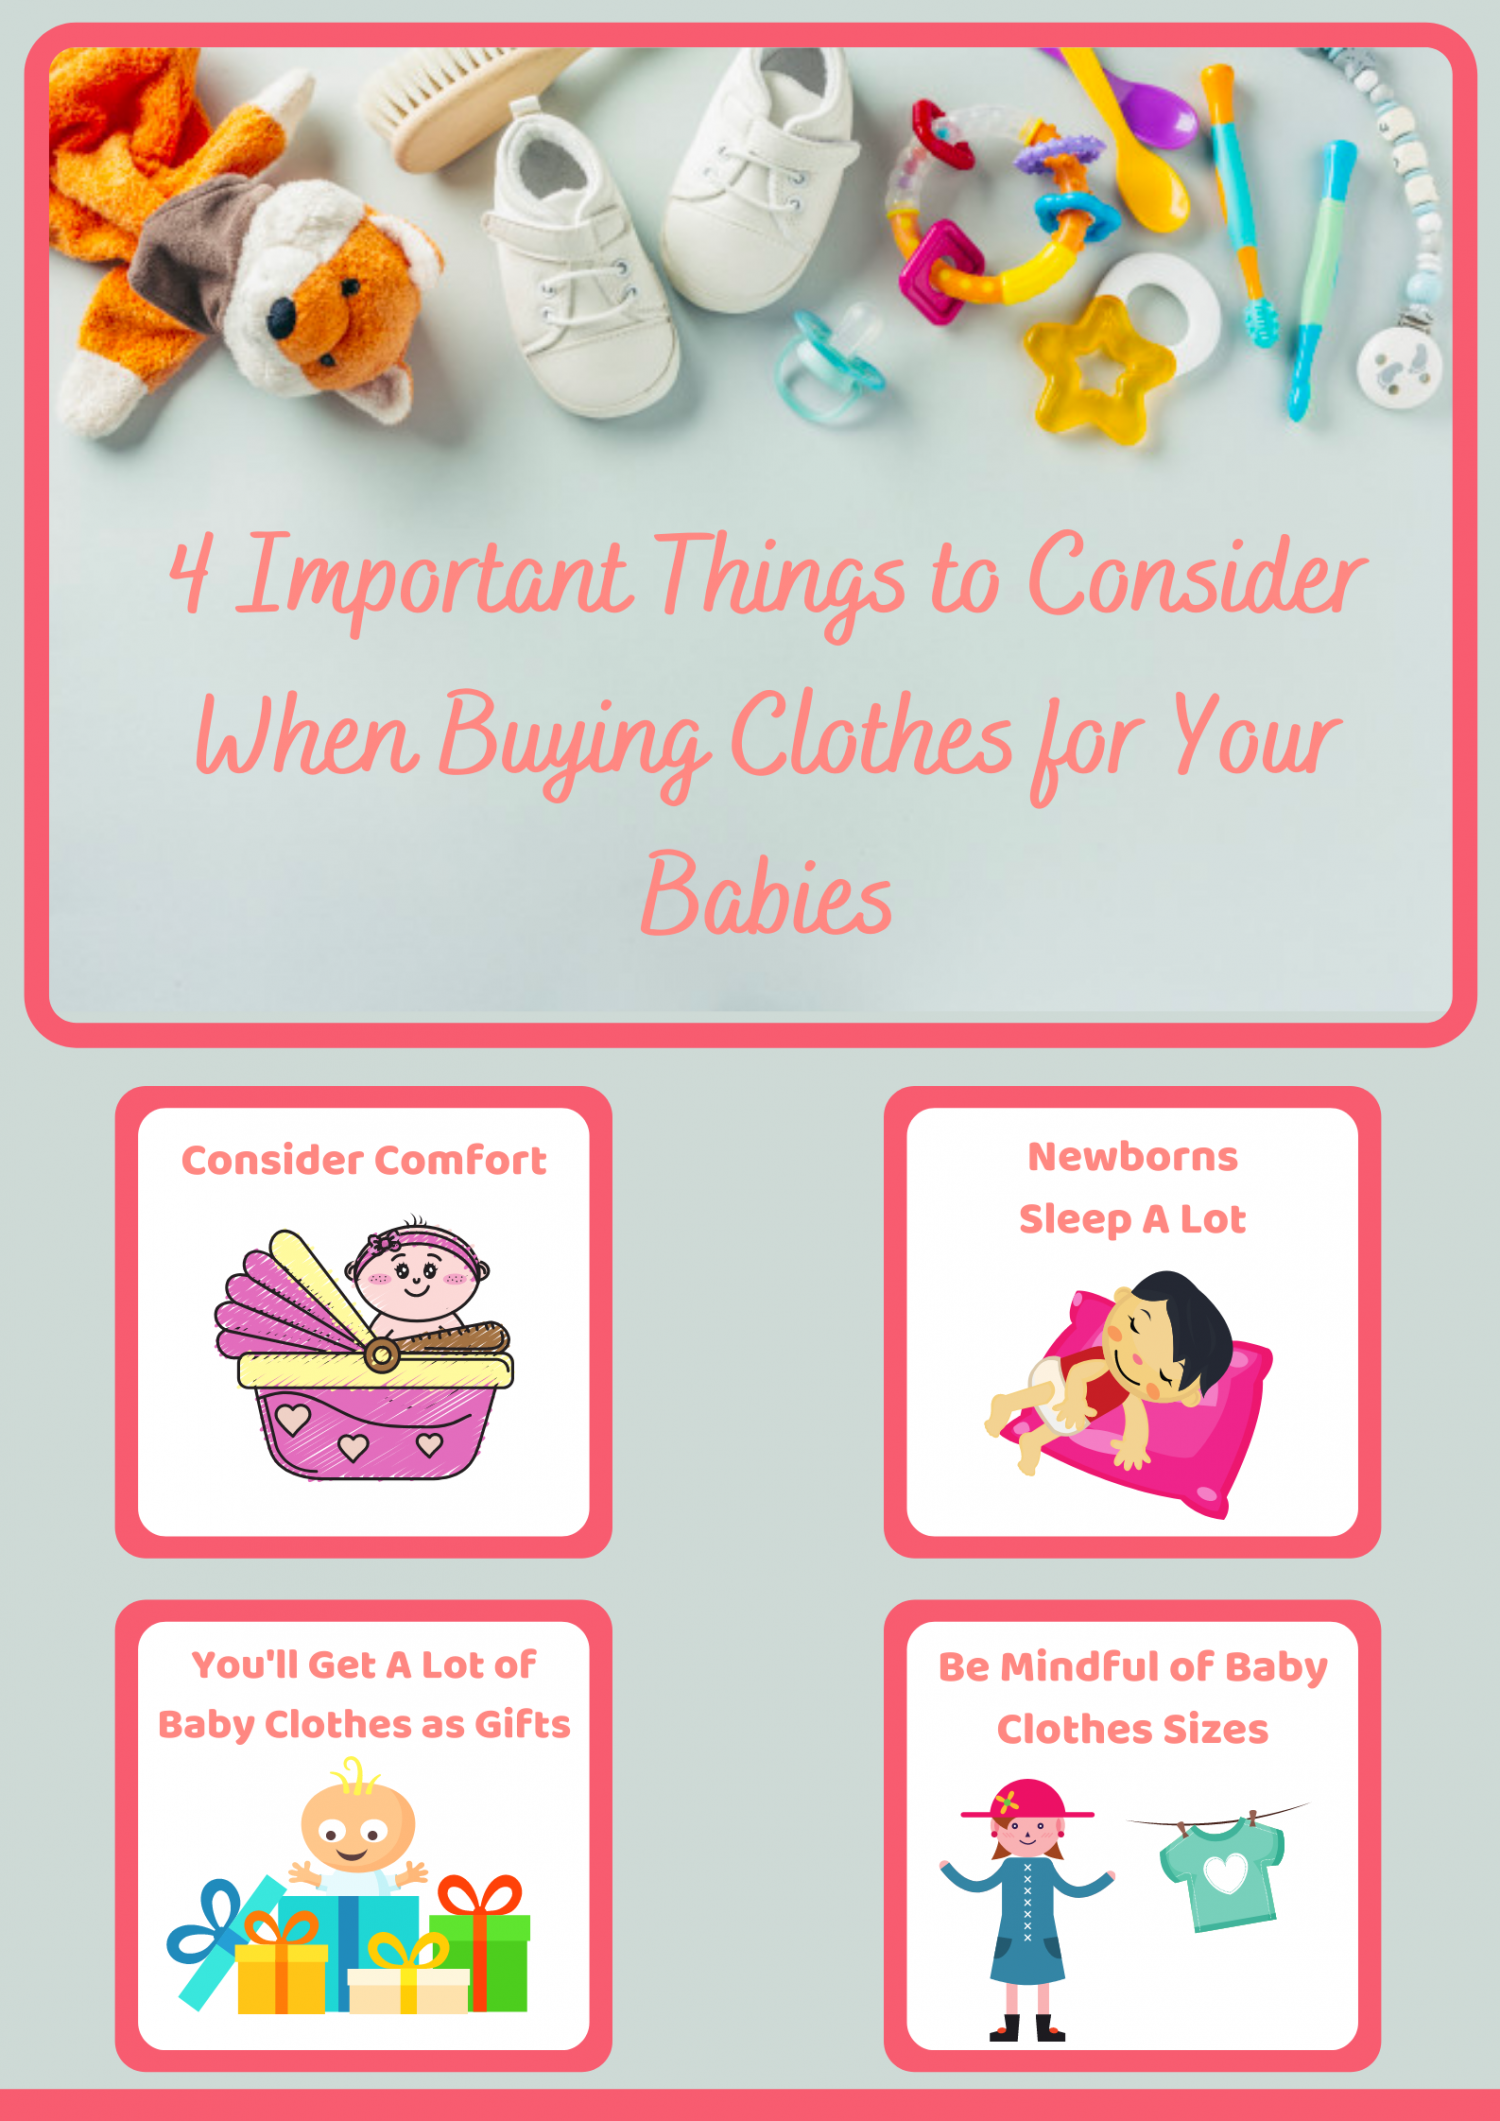 4 Important Things to Consider When Buying Clothes for Your Babies Infographic